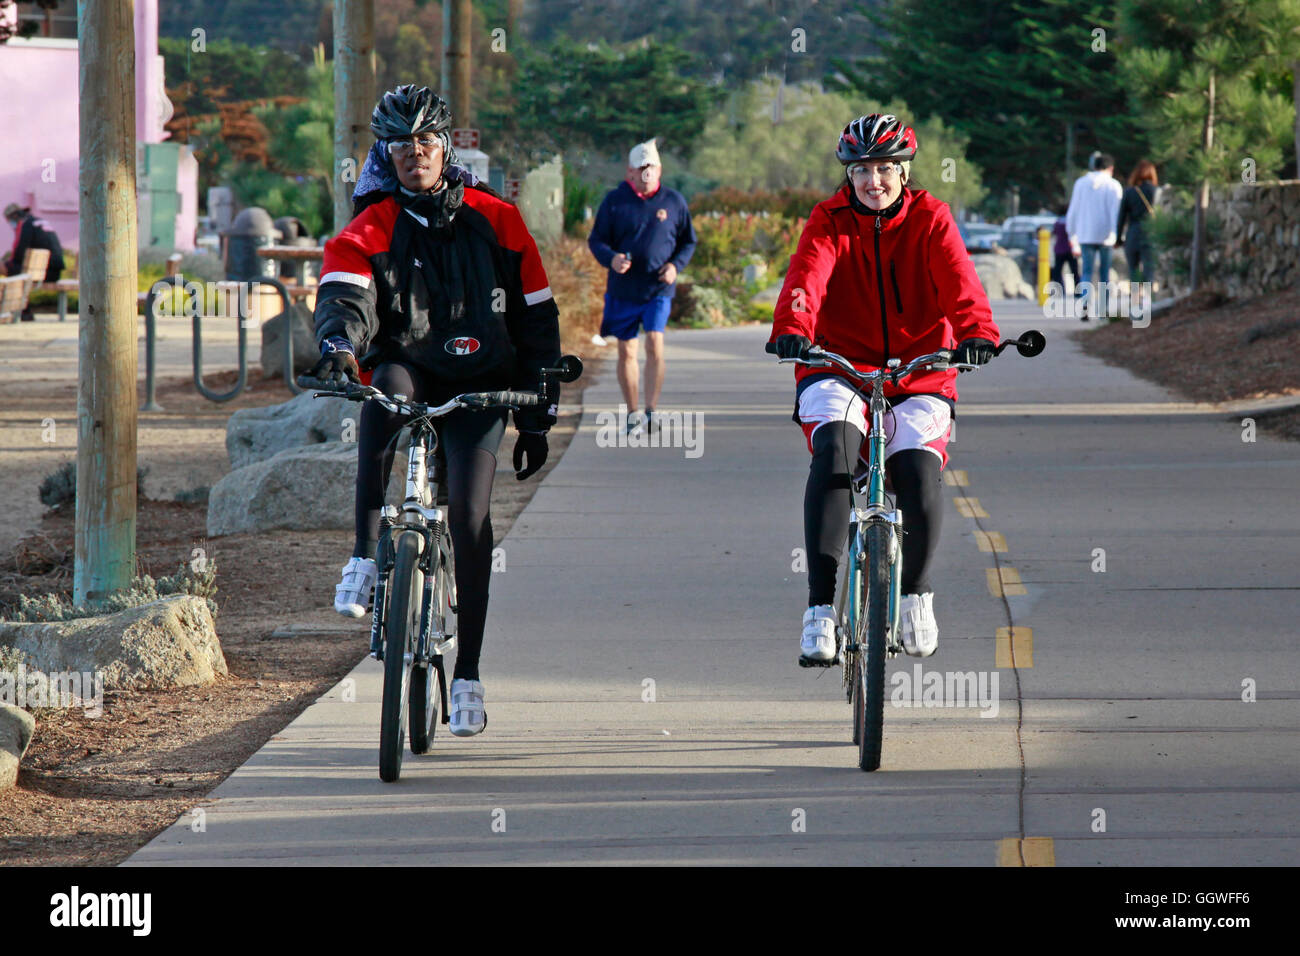 The bike path is popular with tourists and locals alike - MONTEREY, CALIFORNIA - Stock Image